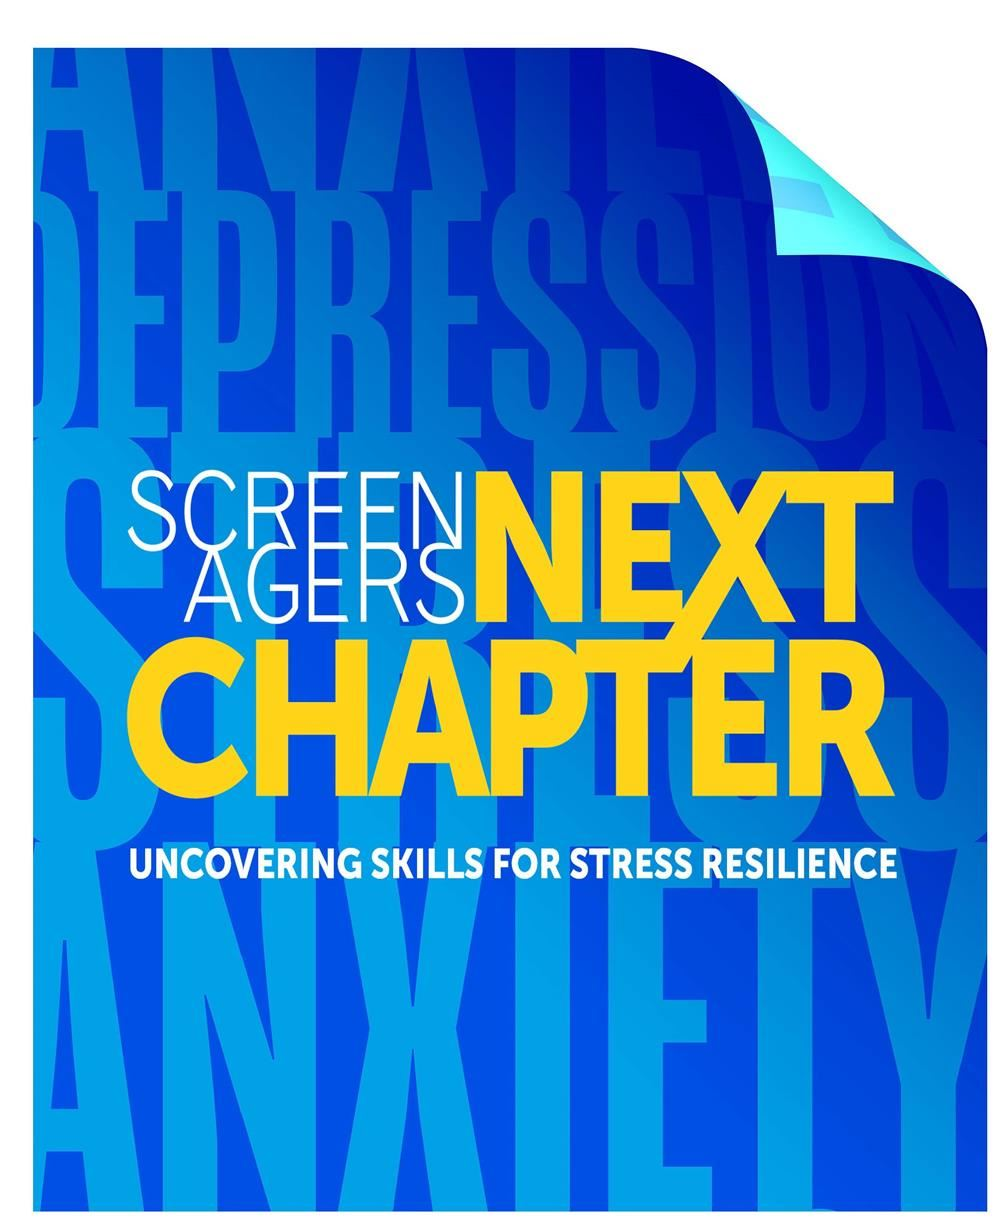 Screenagers, The Next Chapter - February 6, 2020